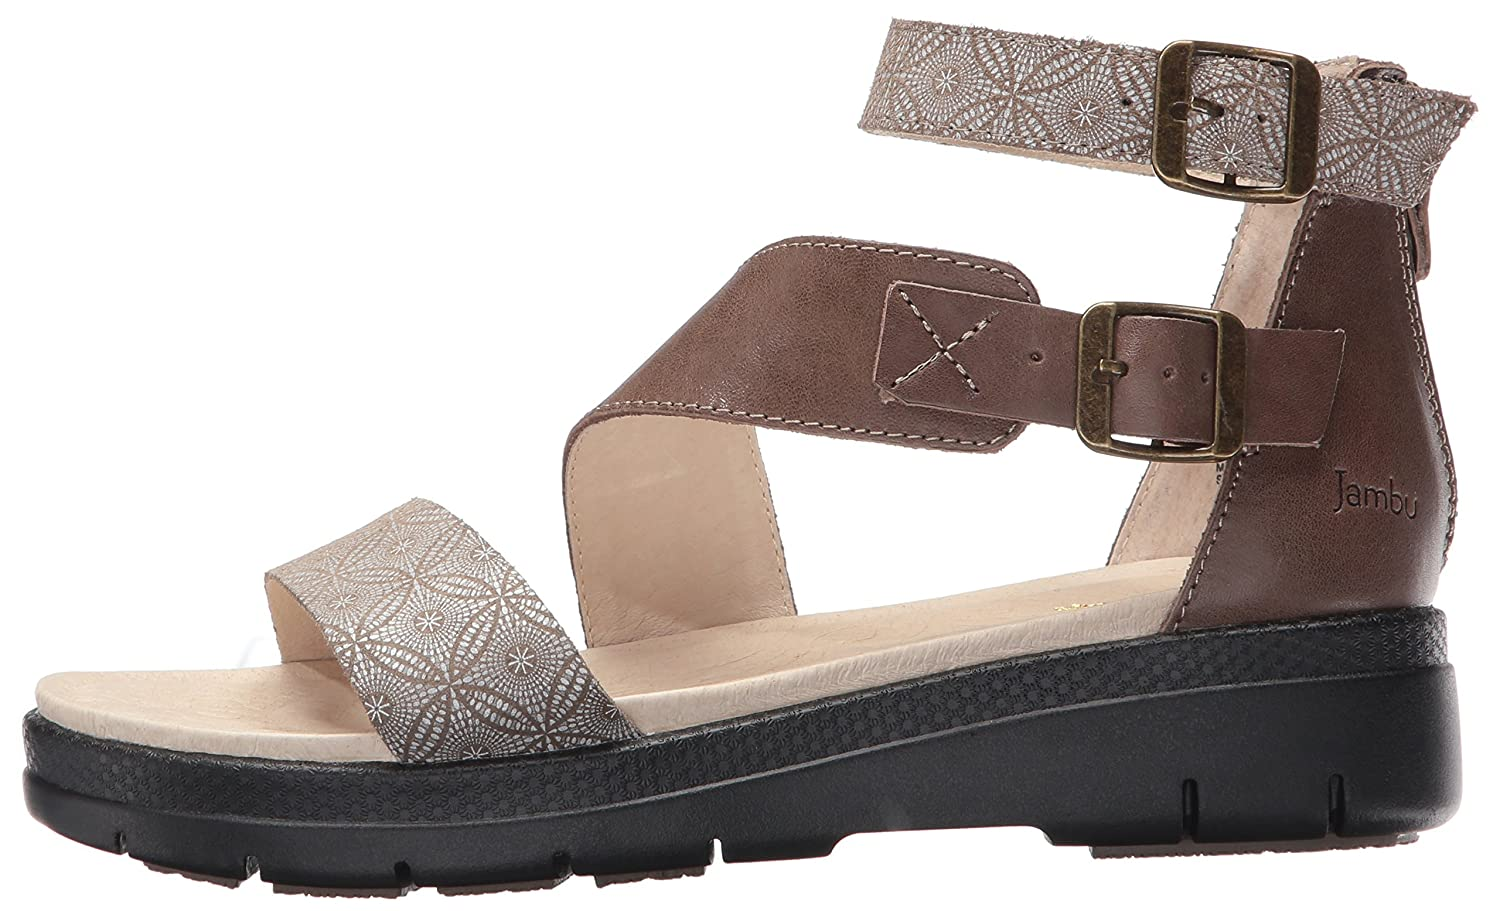 Jambu Women's Cape May Wedge Sandal B01IDQMMVM 6 B(M) US|Taupe Print